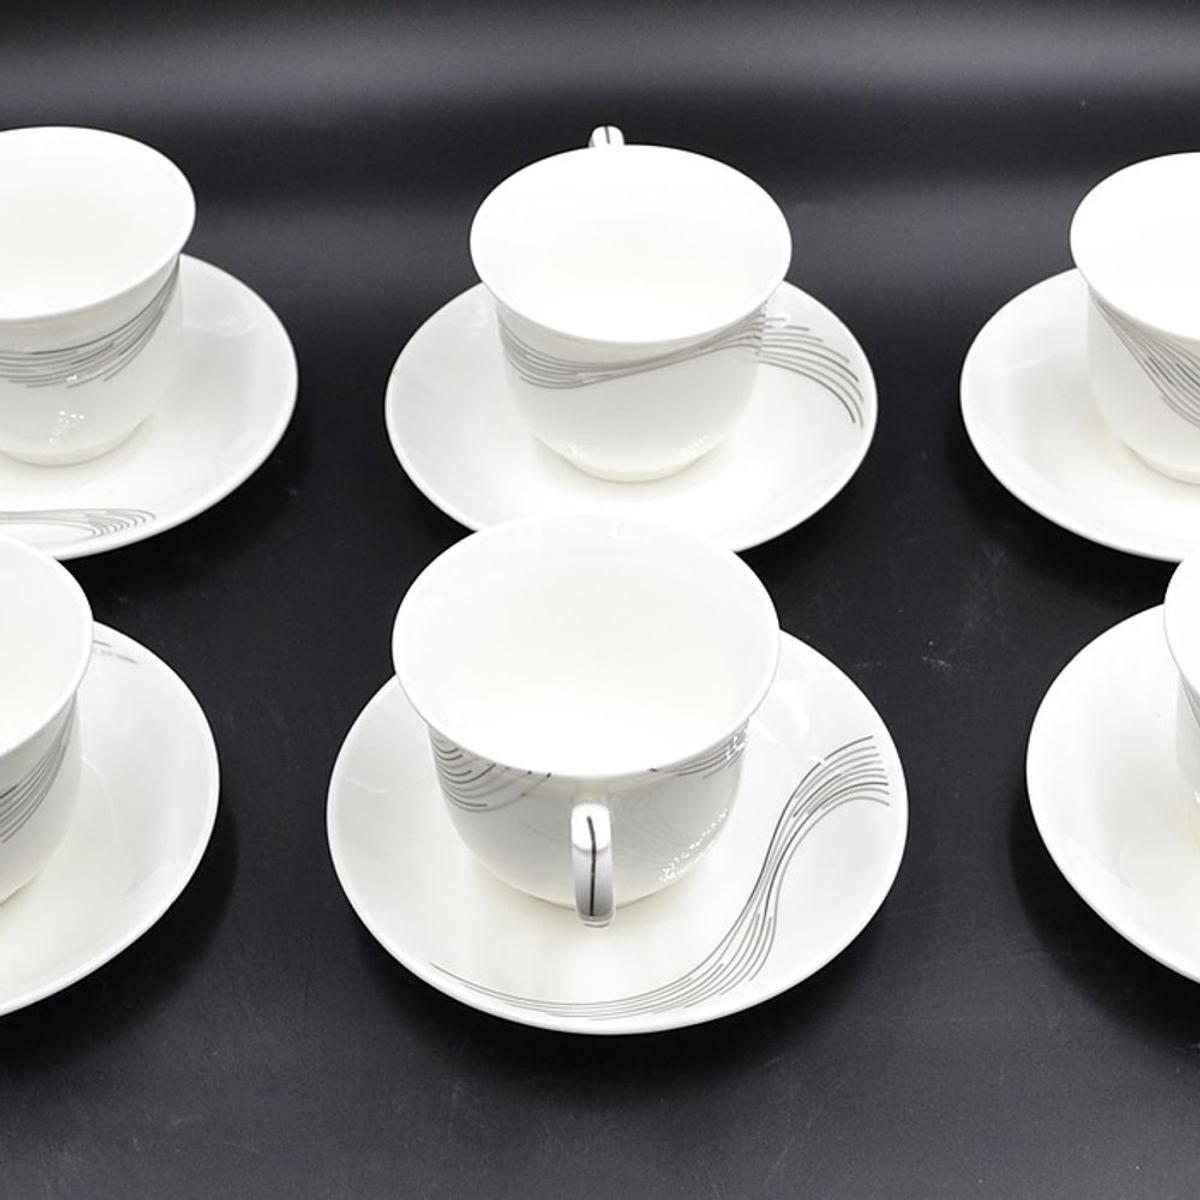 6a8391bee2 6 piece Tea Cup and Saucer Set 4-6A in N4 Islington for £24.00 for ...